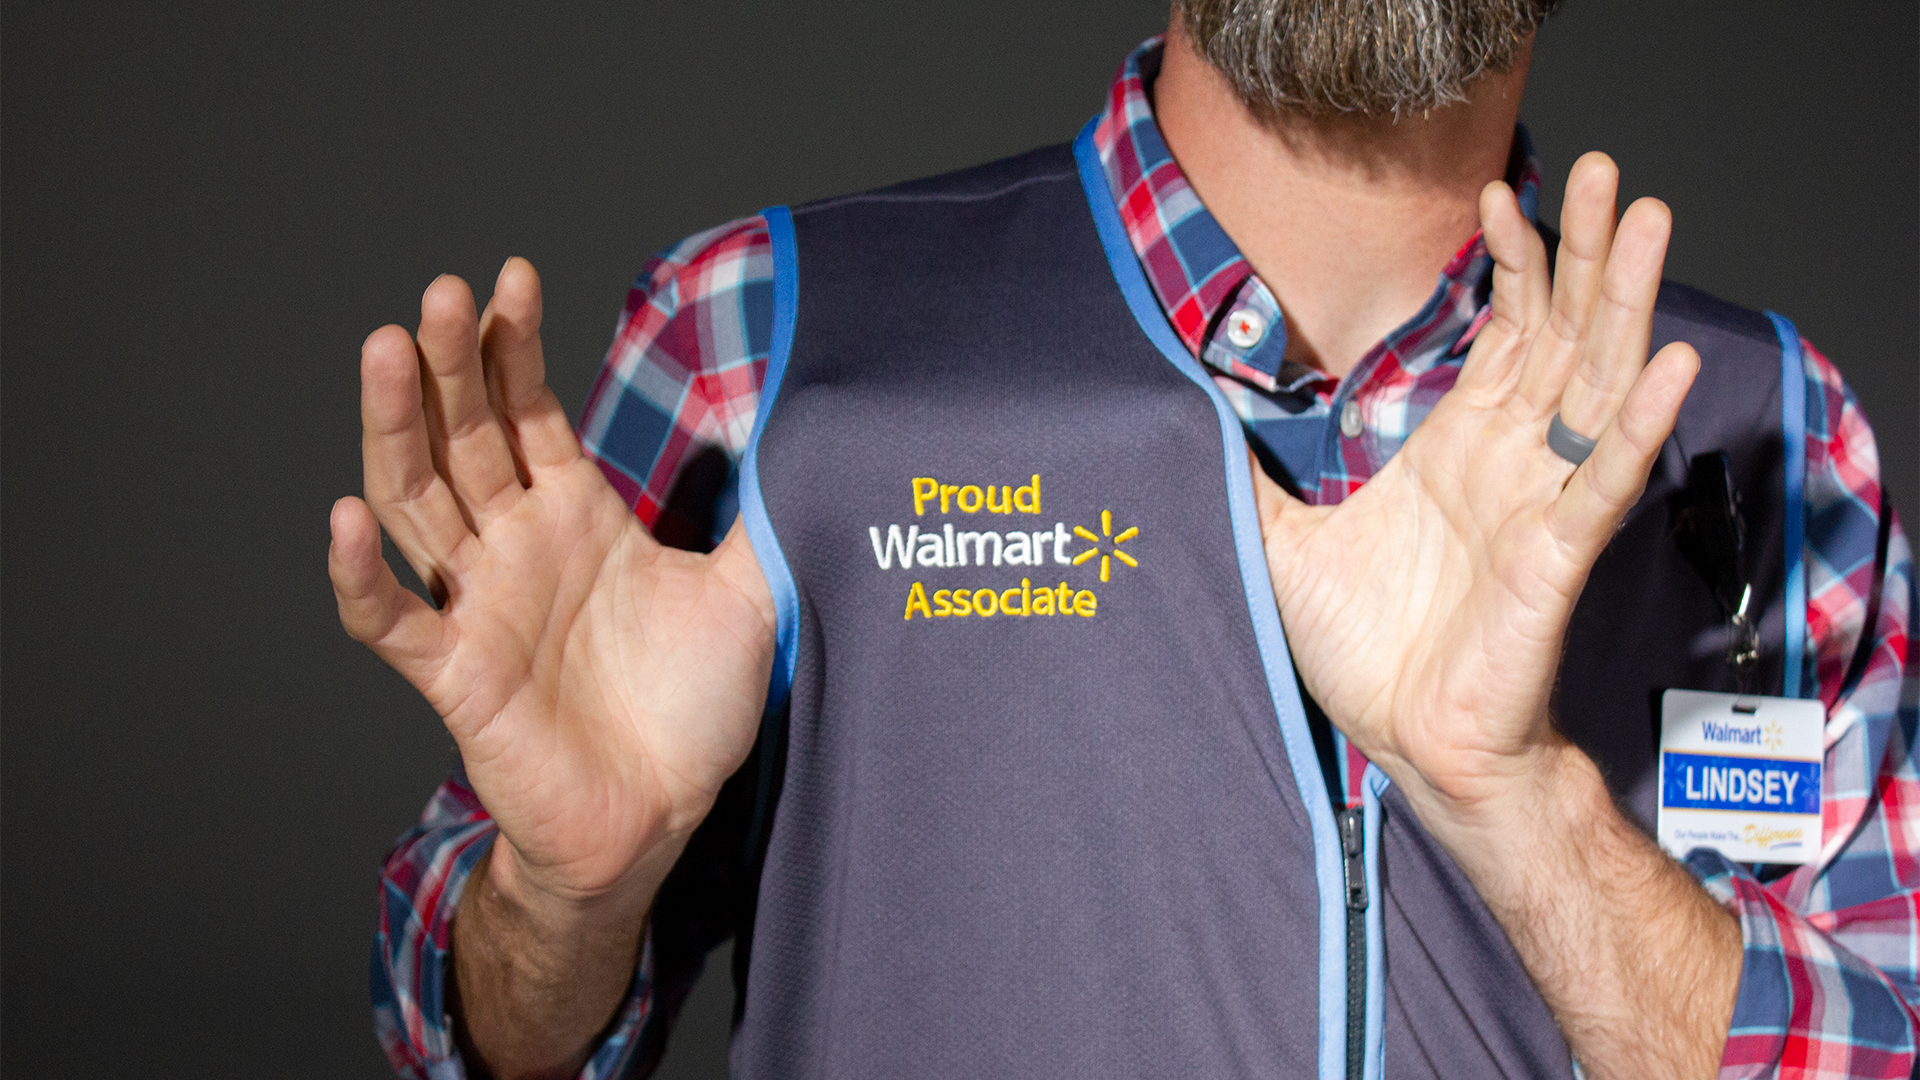 Walmart is redesigning its signature blue vests worn by employees in stores.